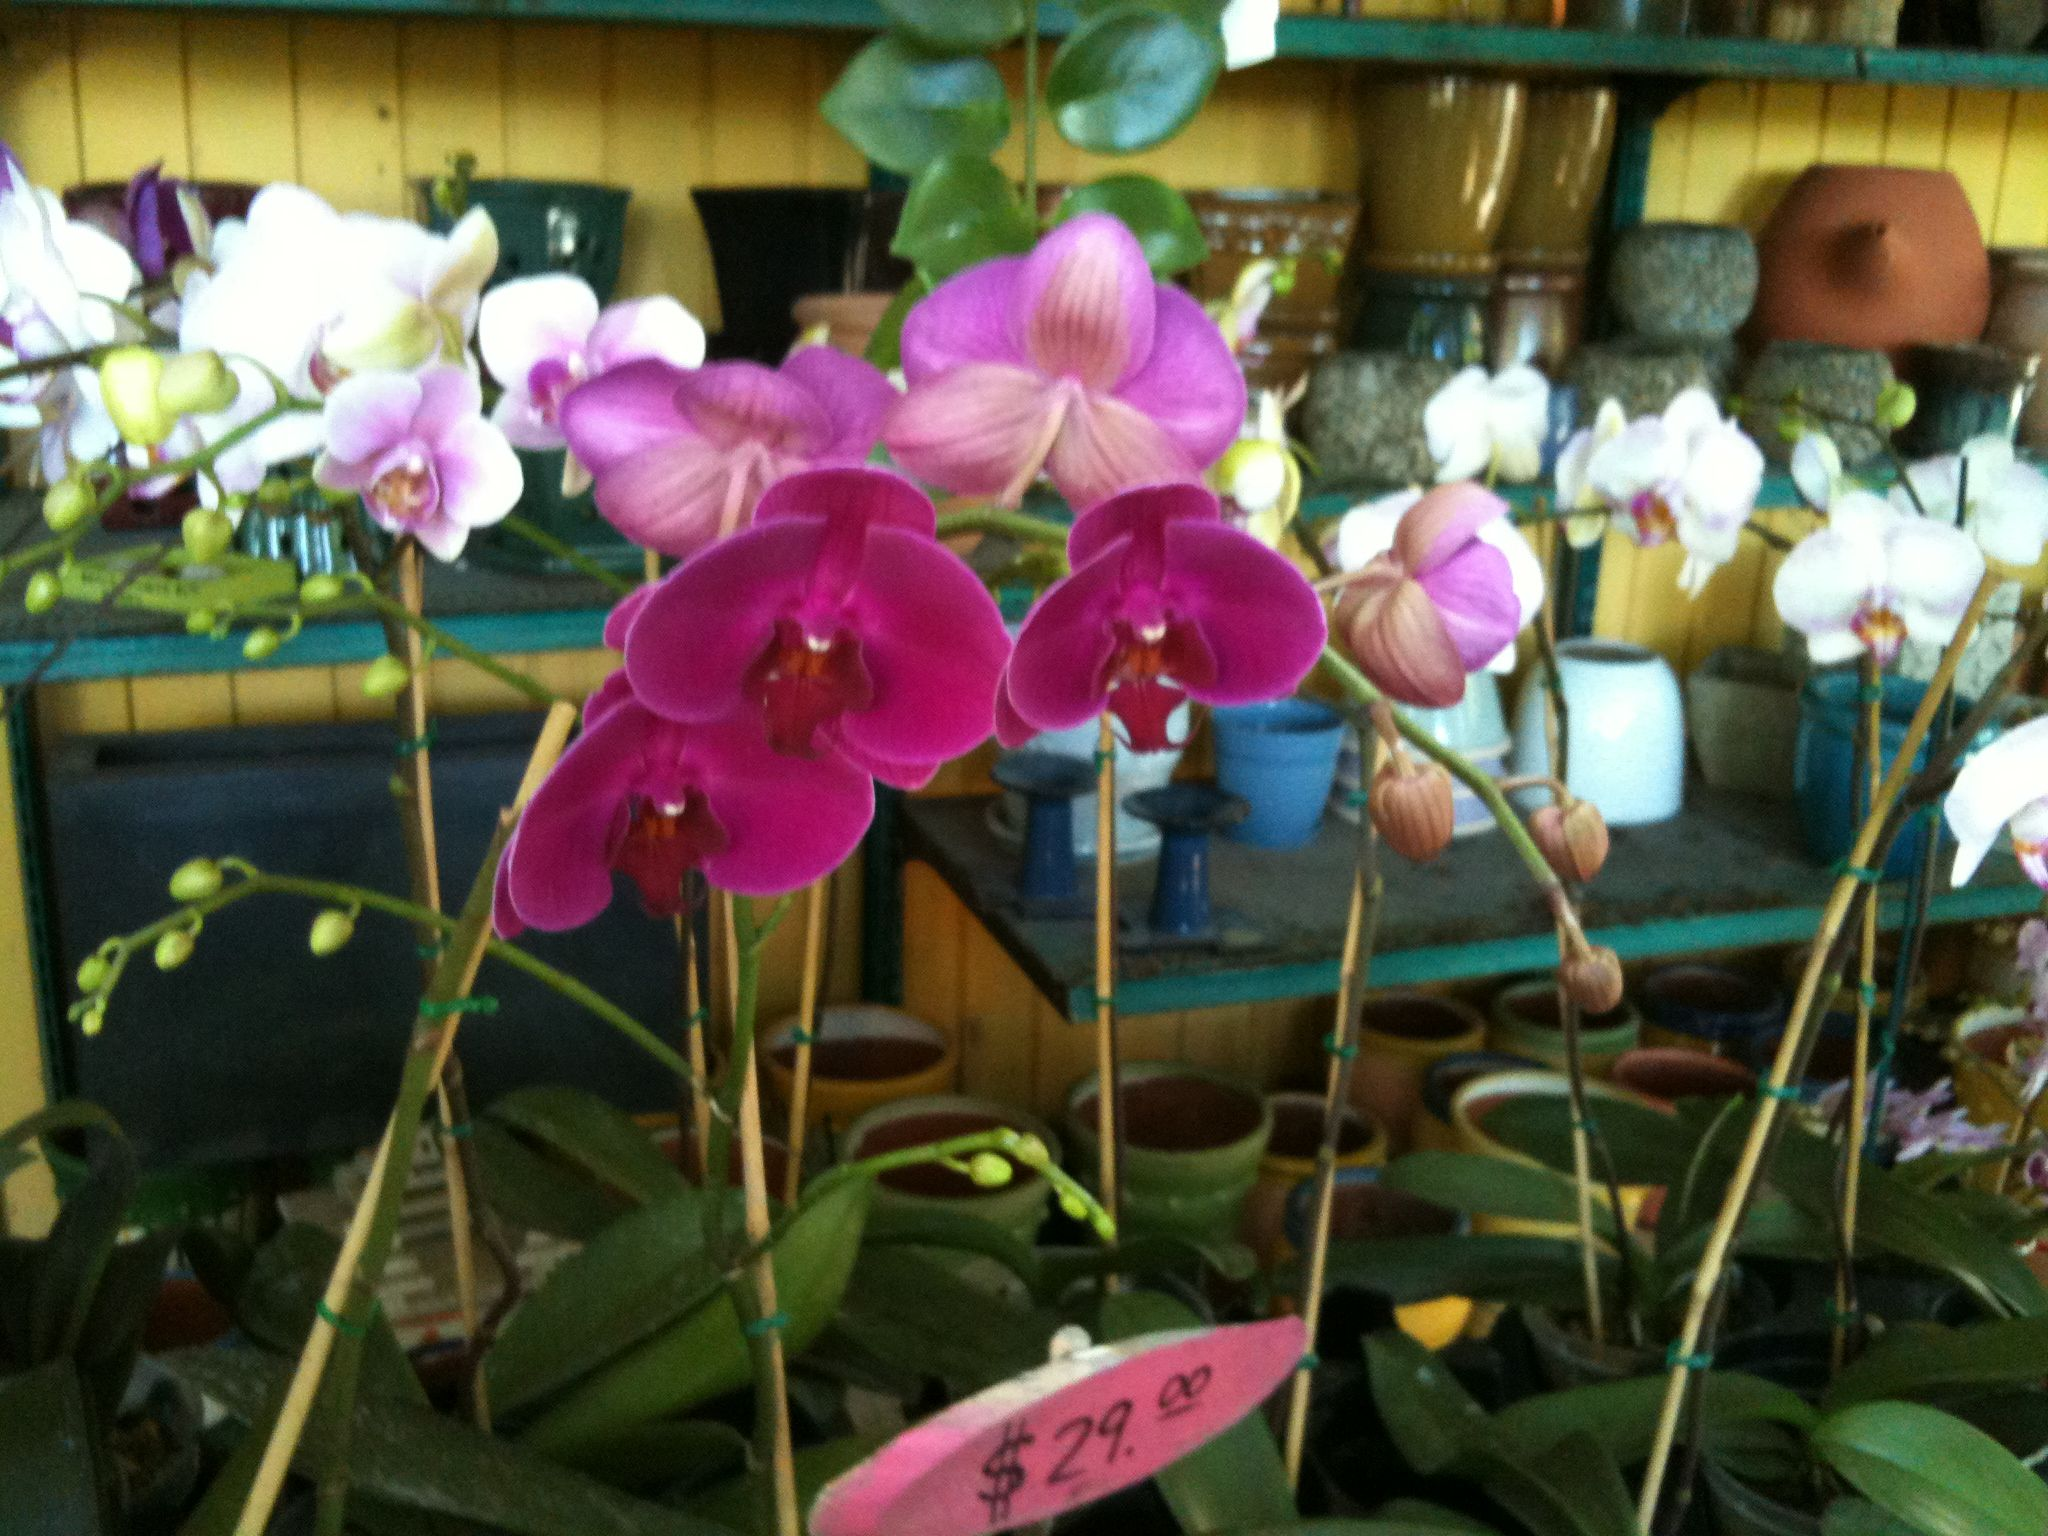 Photo of Orchids I took in Key West, Florida. Trees to